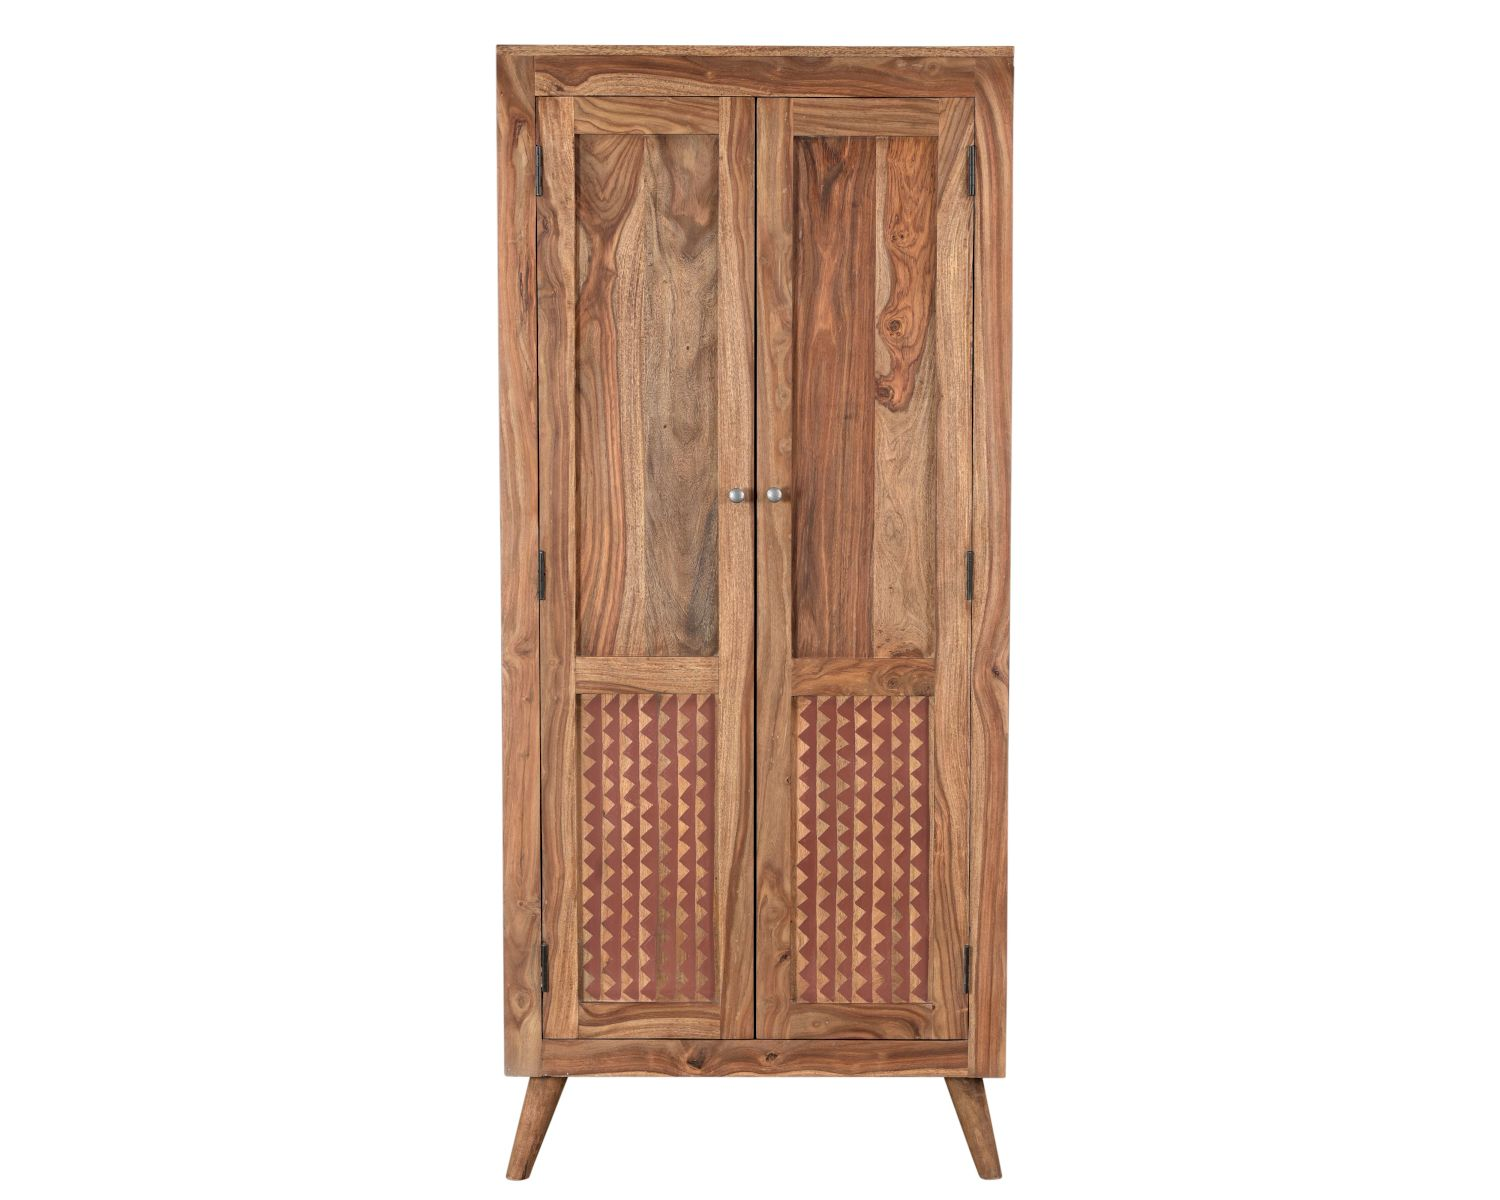 SIT Scandi Sheesham Schrank 4364-01 / Sheesham